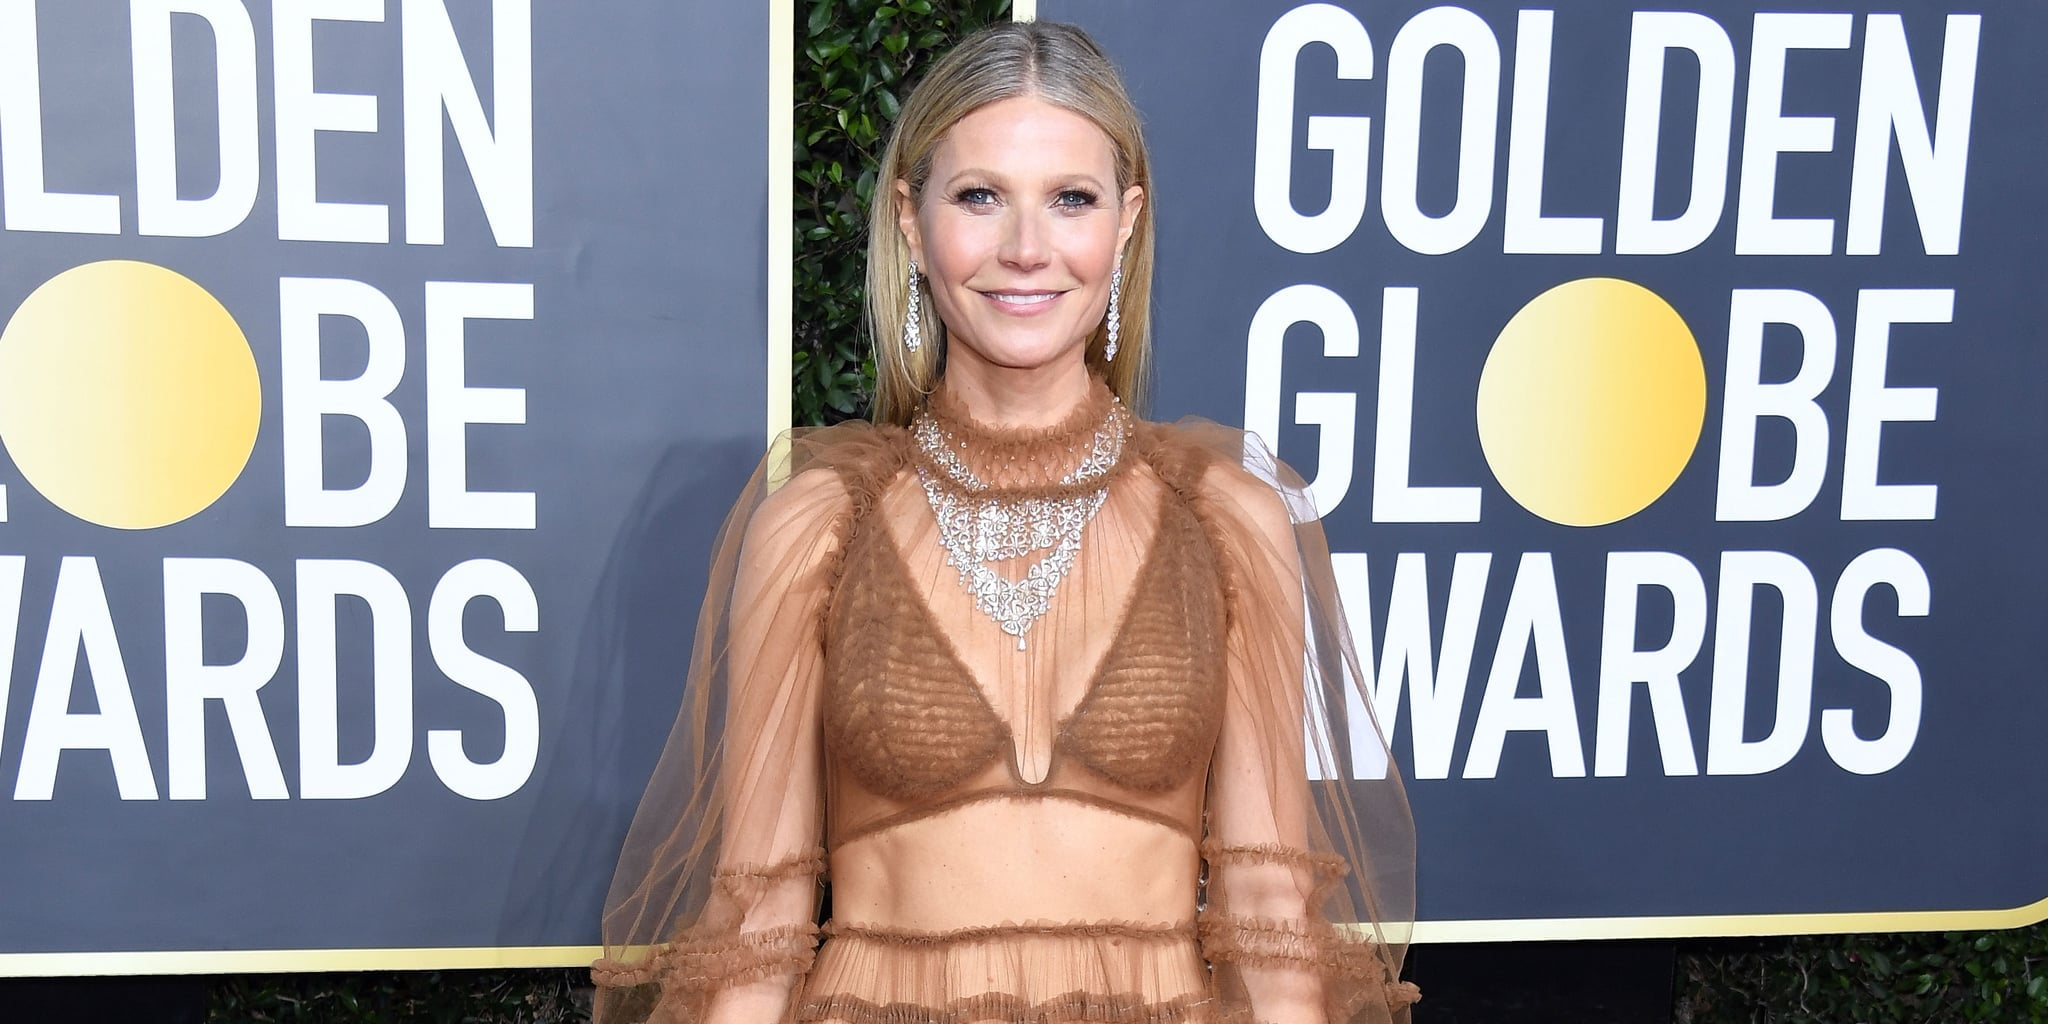 Gwyneth Paltrow Is Hosting a Cruise and Conference to Promote Goop